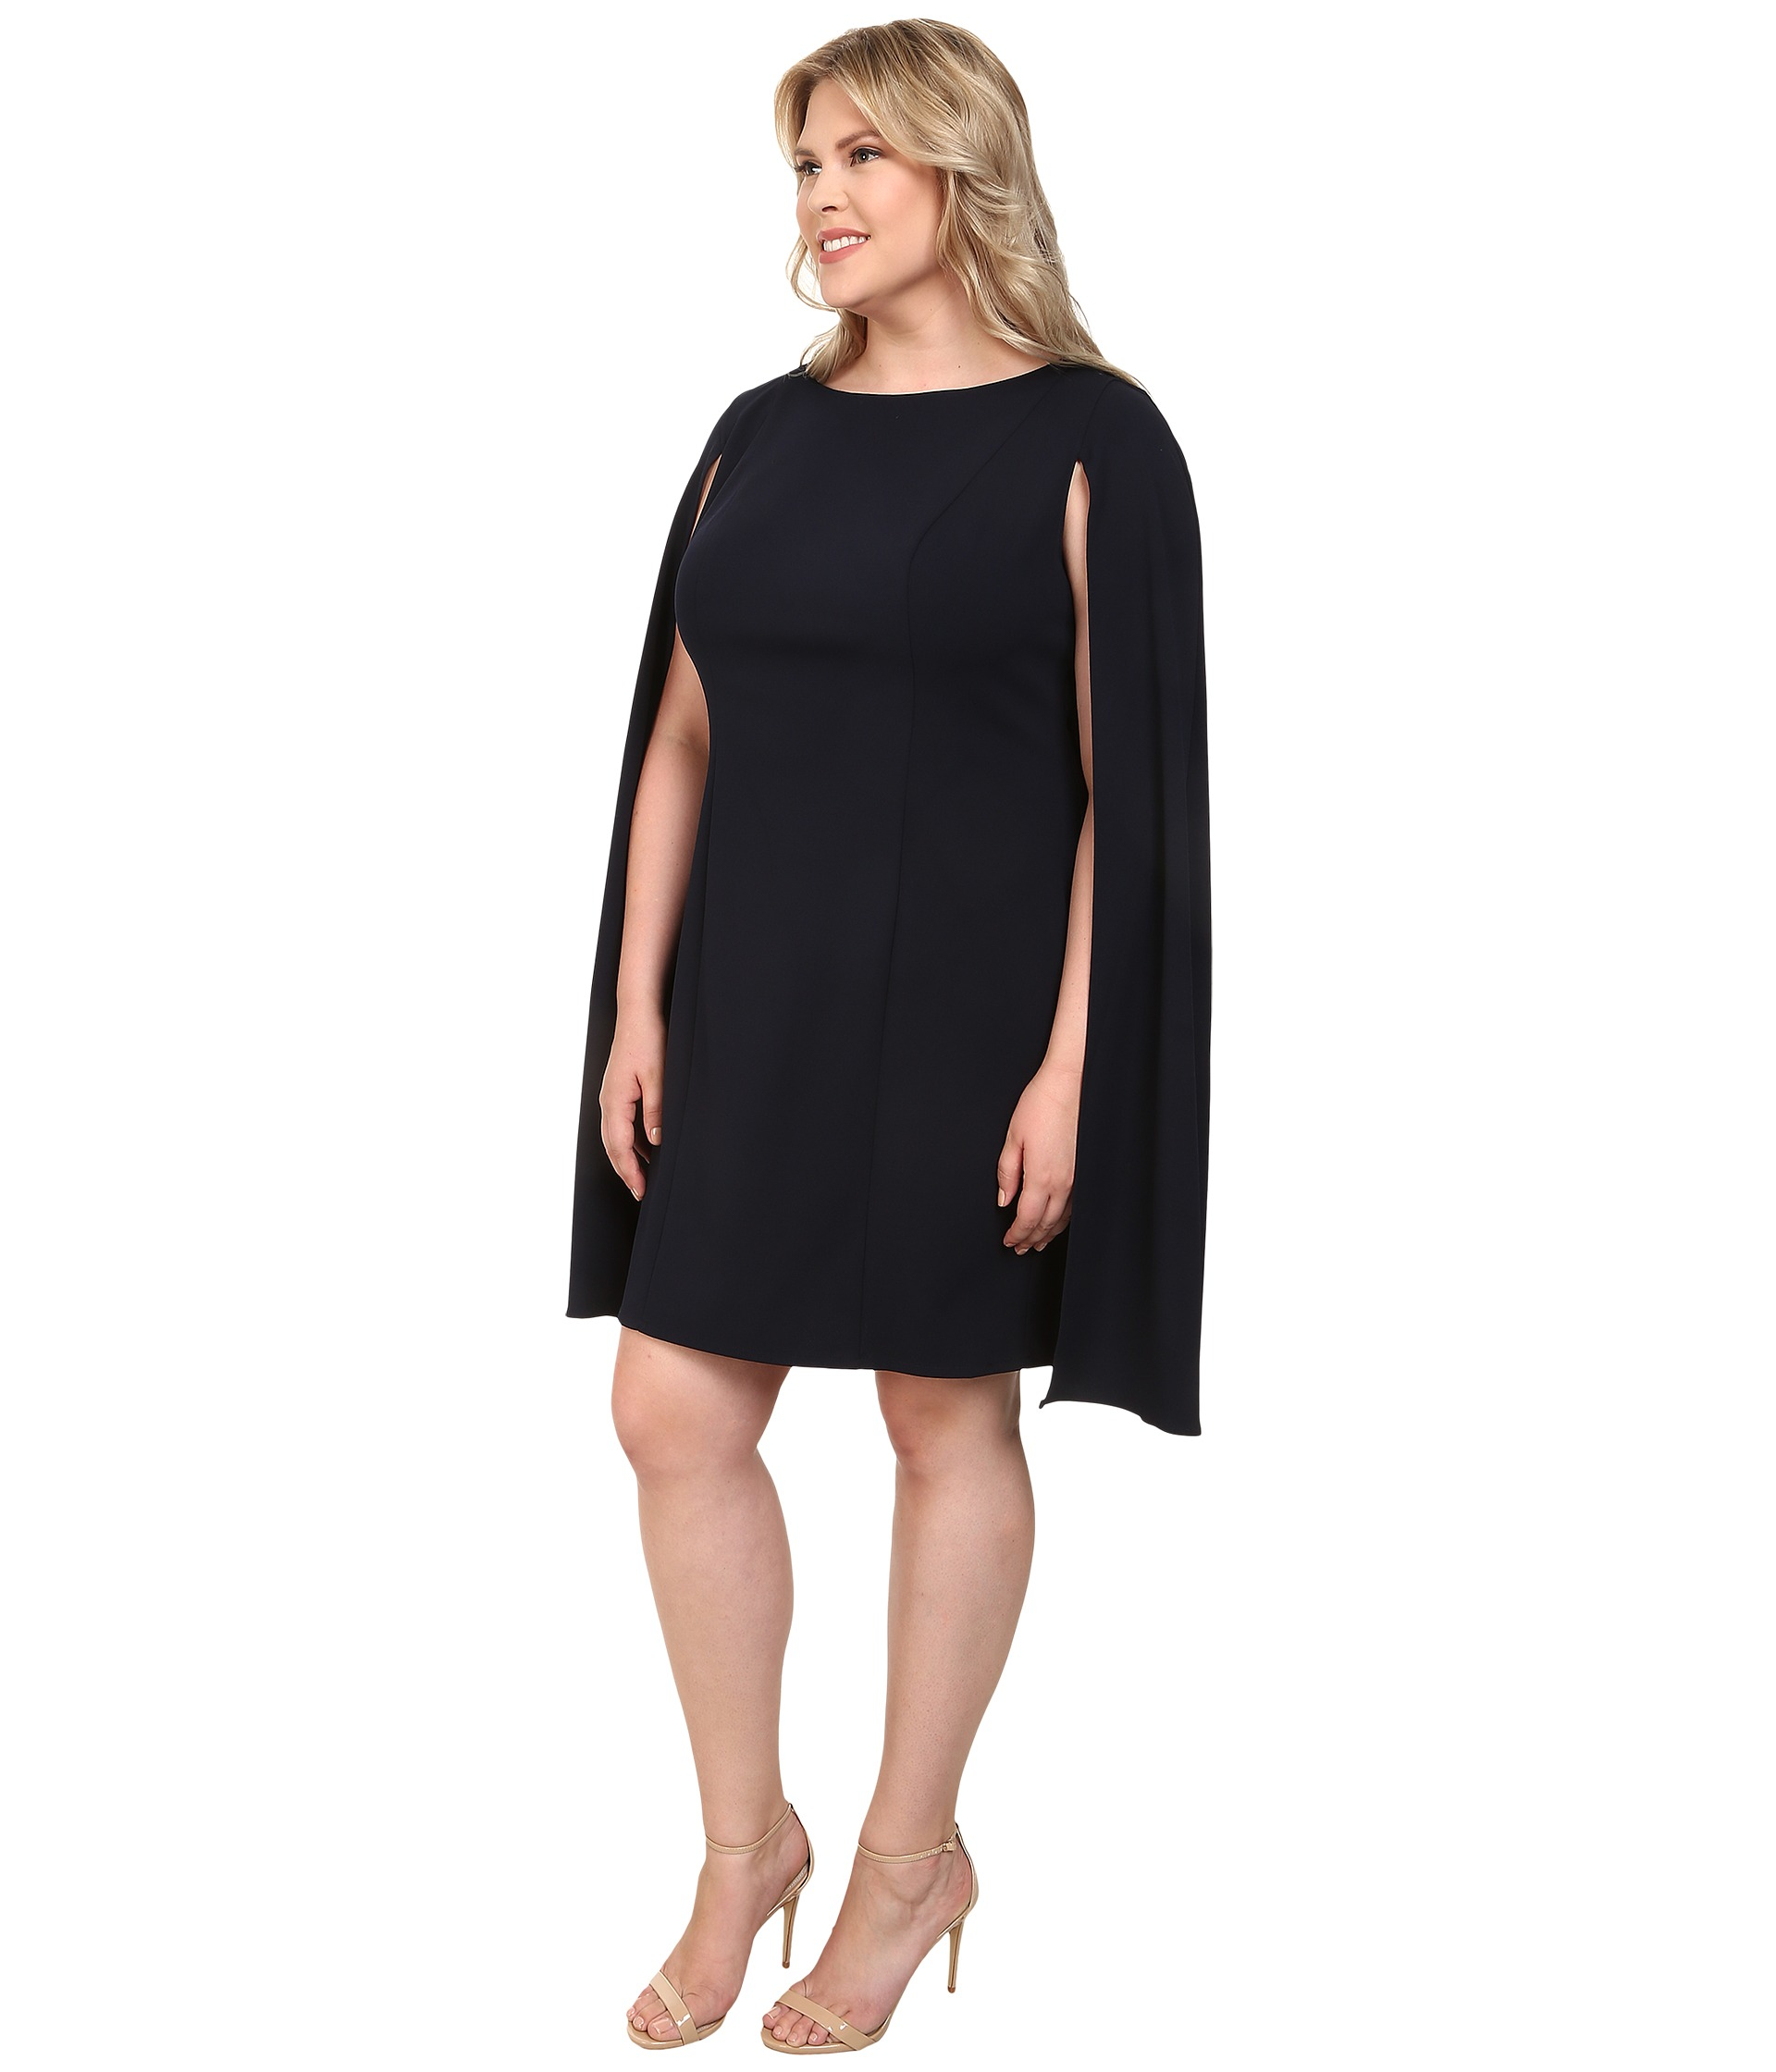 8cc39061 Gallery. Previously sold at: Zappos · Women's Adrianna Papell Sheath Dress